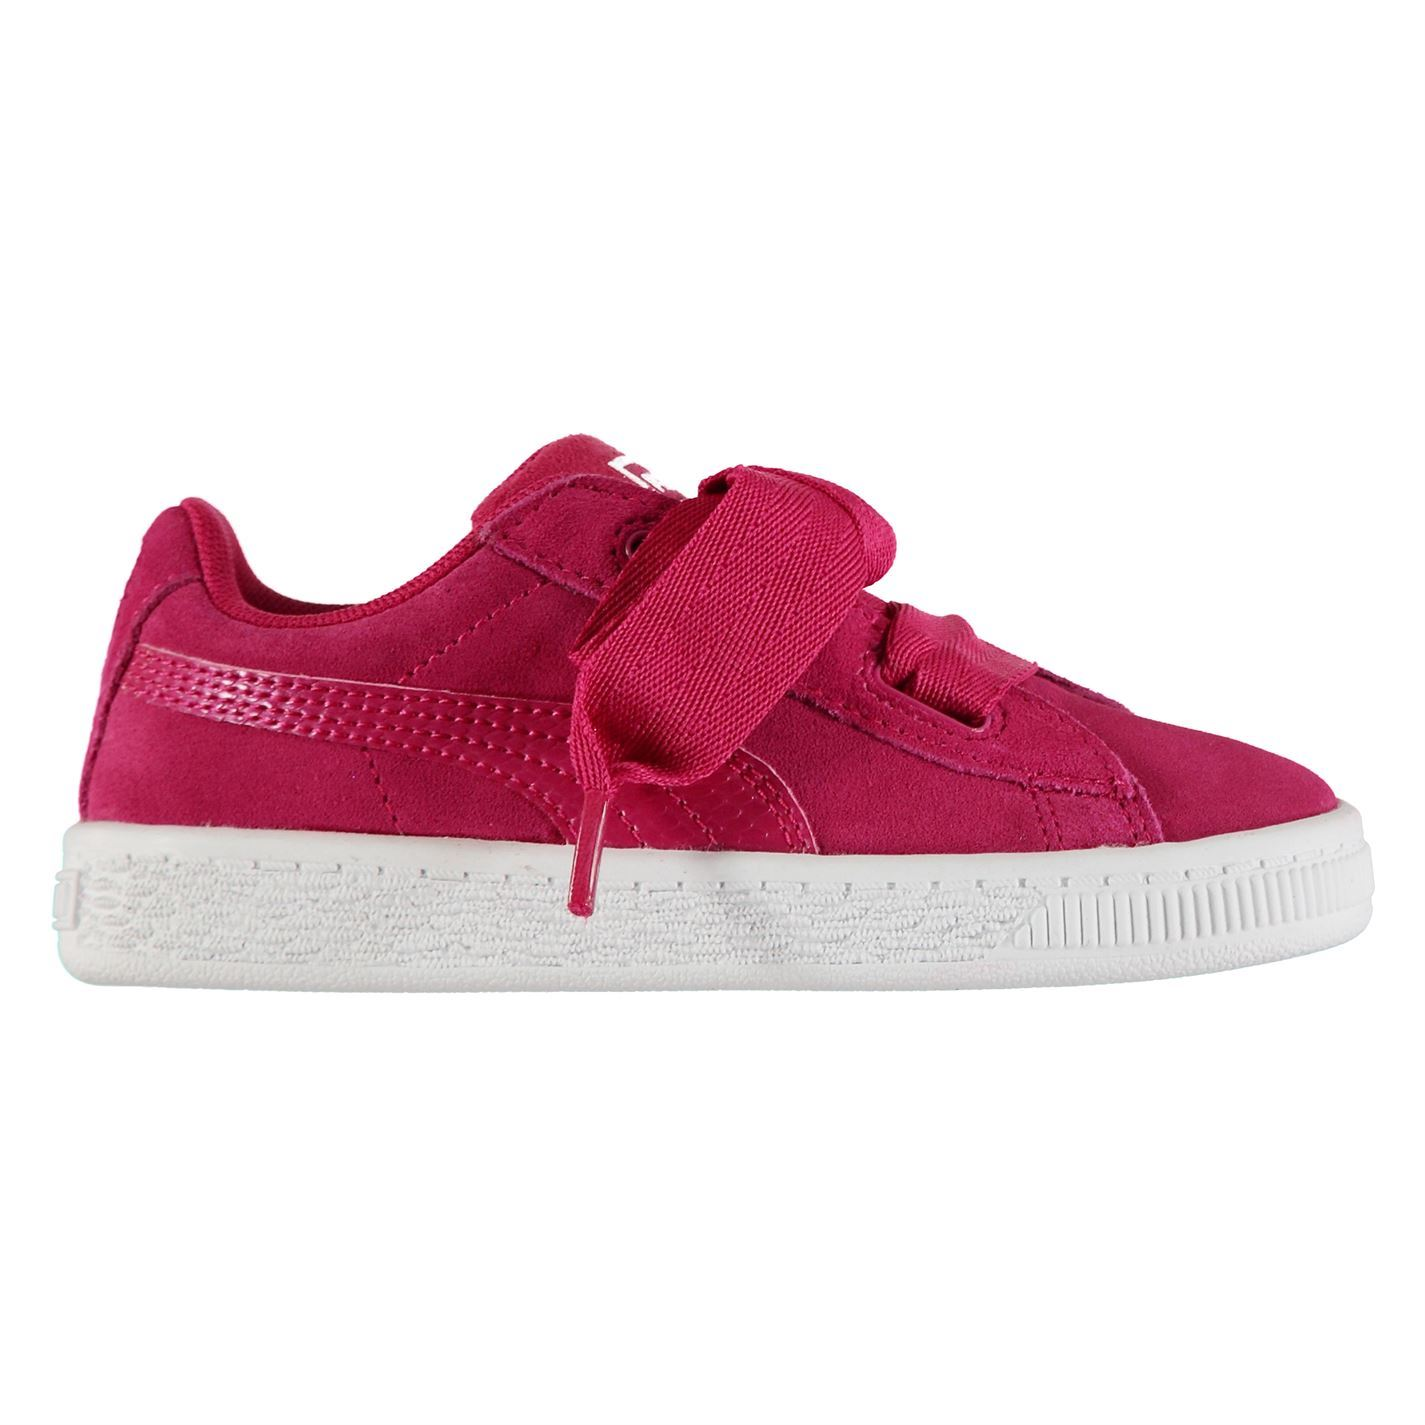 aaf7052e99556f ... Kids Puma Suede Heart Trainers Metallic Oversized New Picture 2 of 2  first look 339f0 a619c  Offers Womens shoes ...